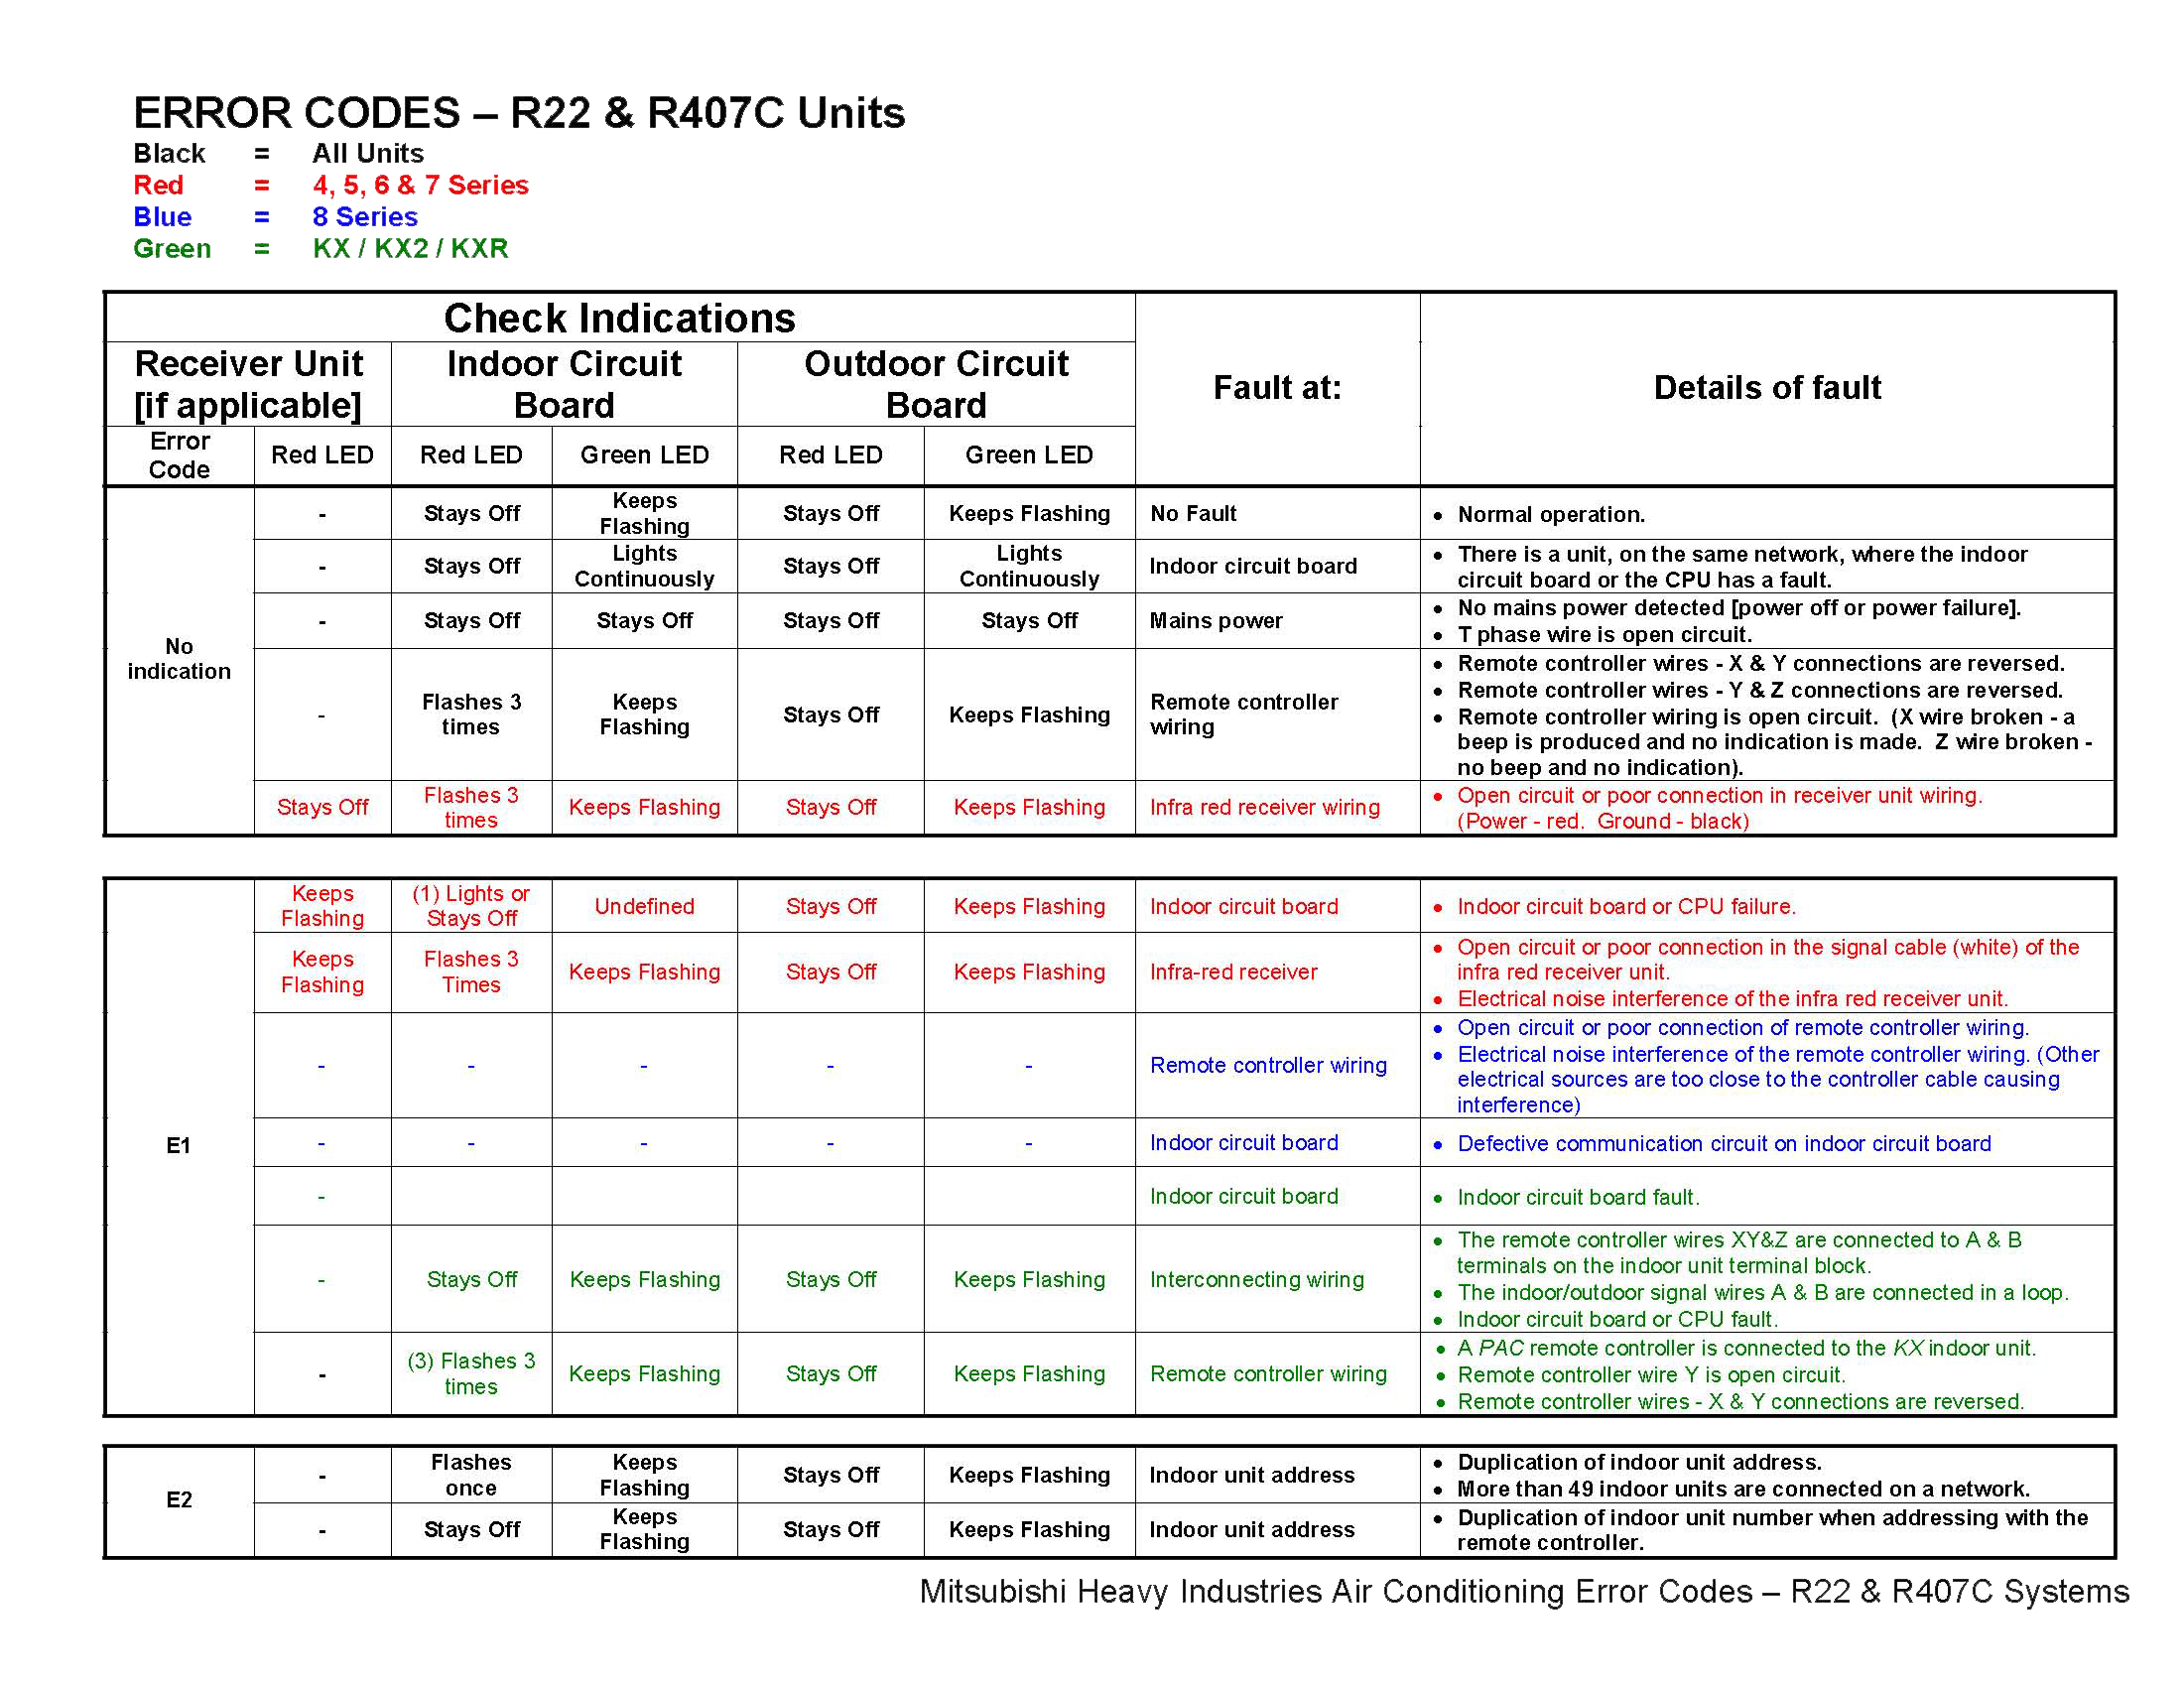 Mitsubishi Heavy EEROR CODE TABLE